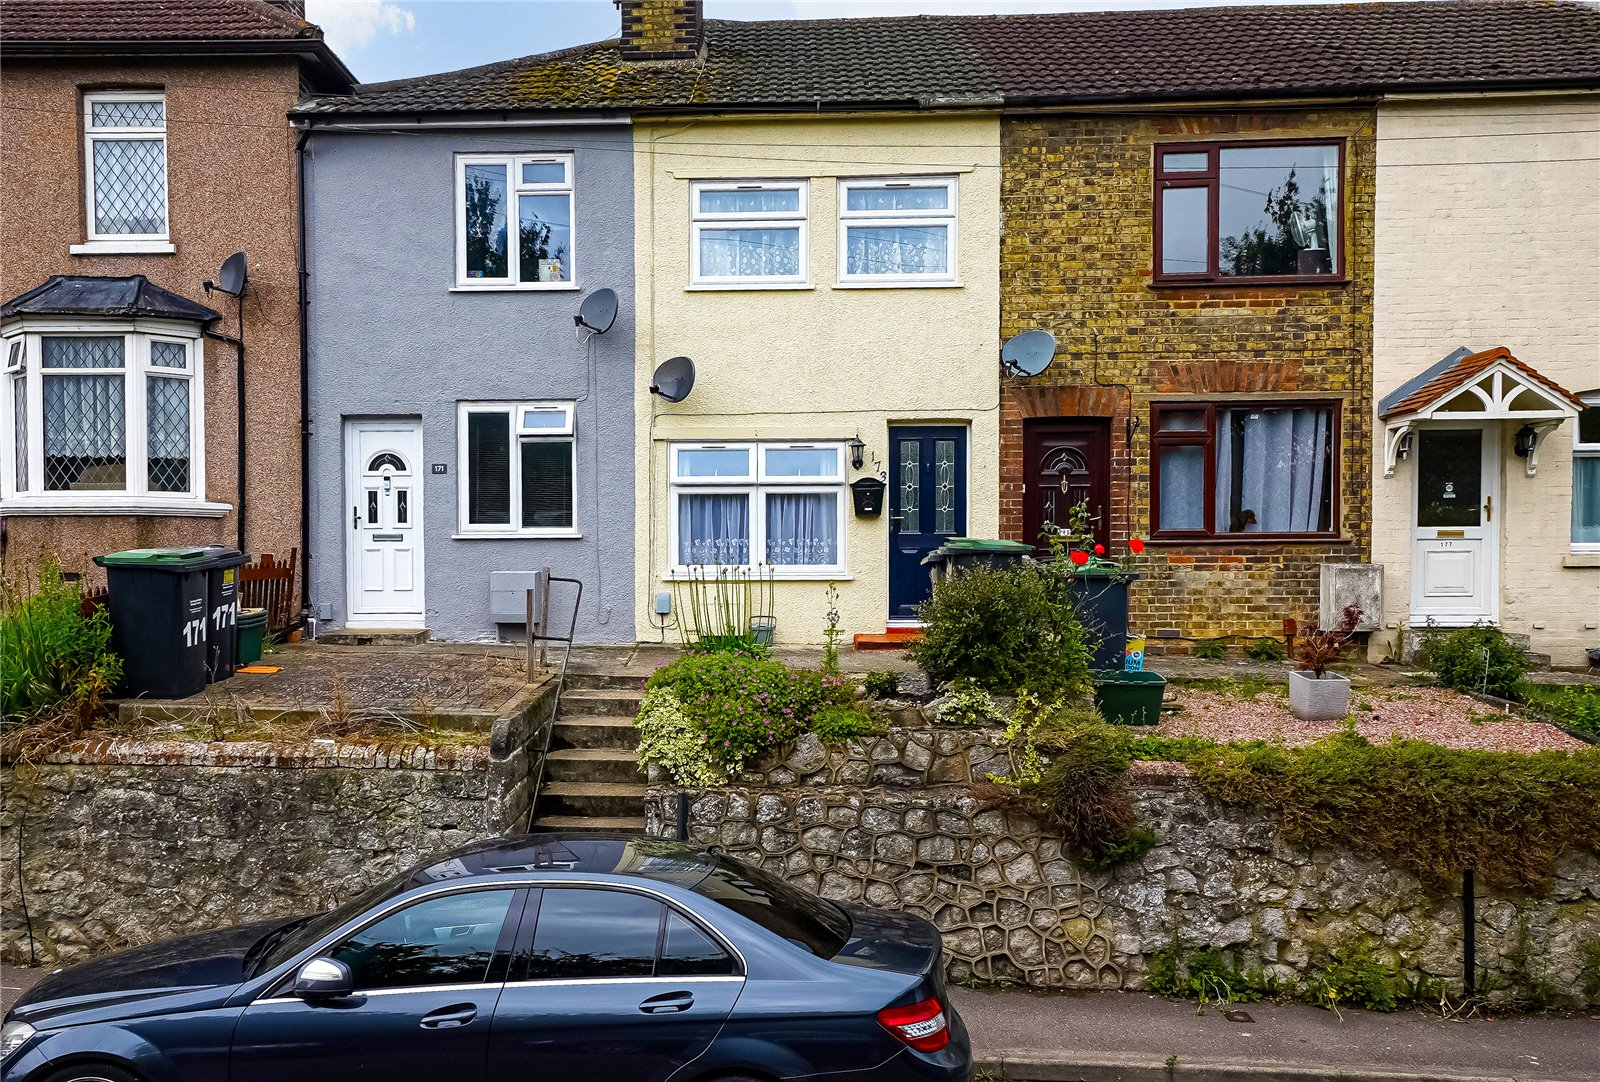 2 bed house for sale in Holborough Road, Snodland, ME6